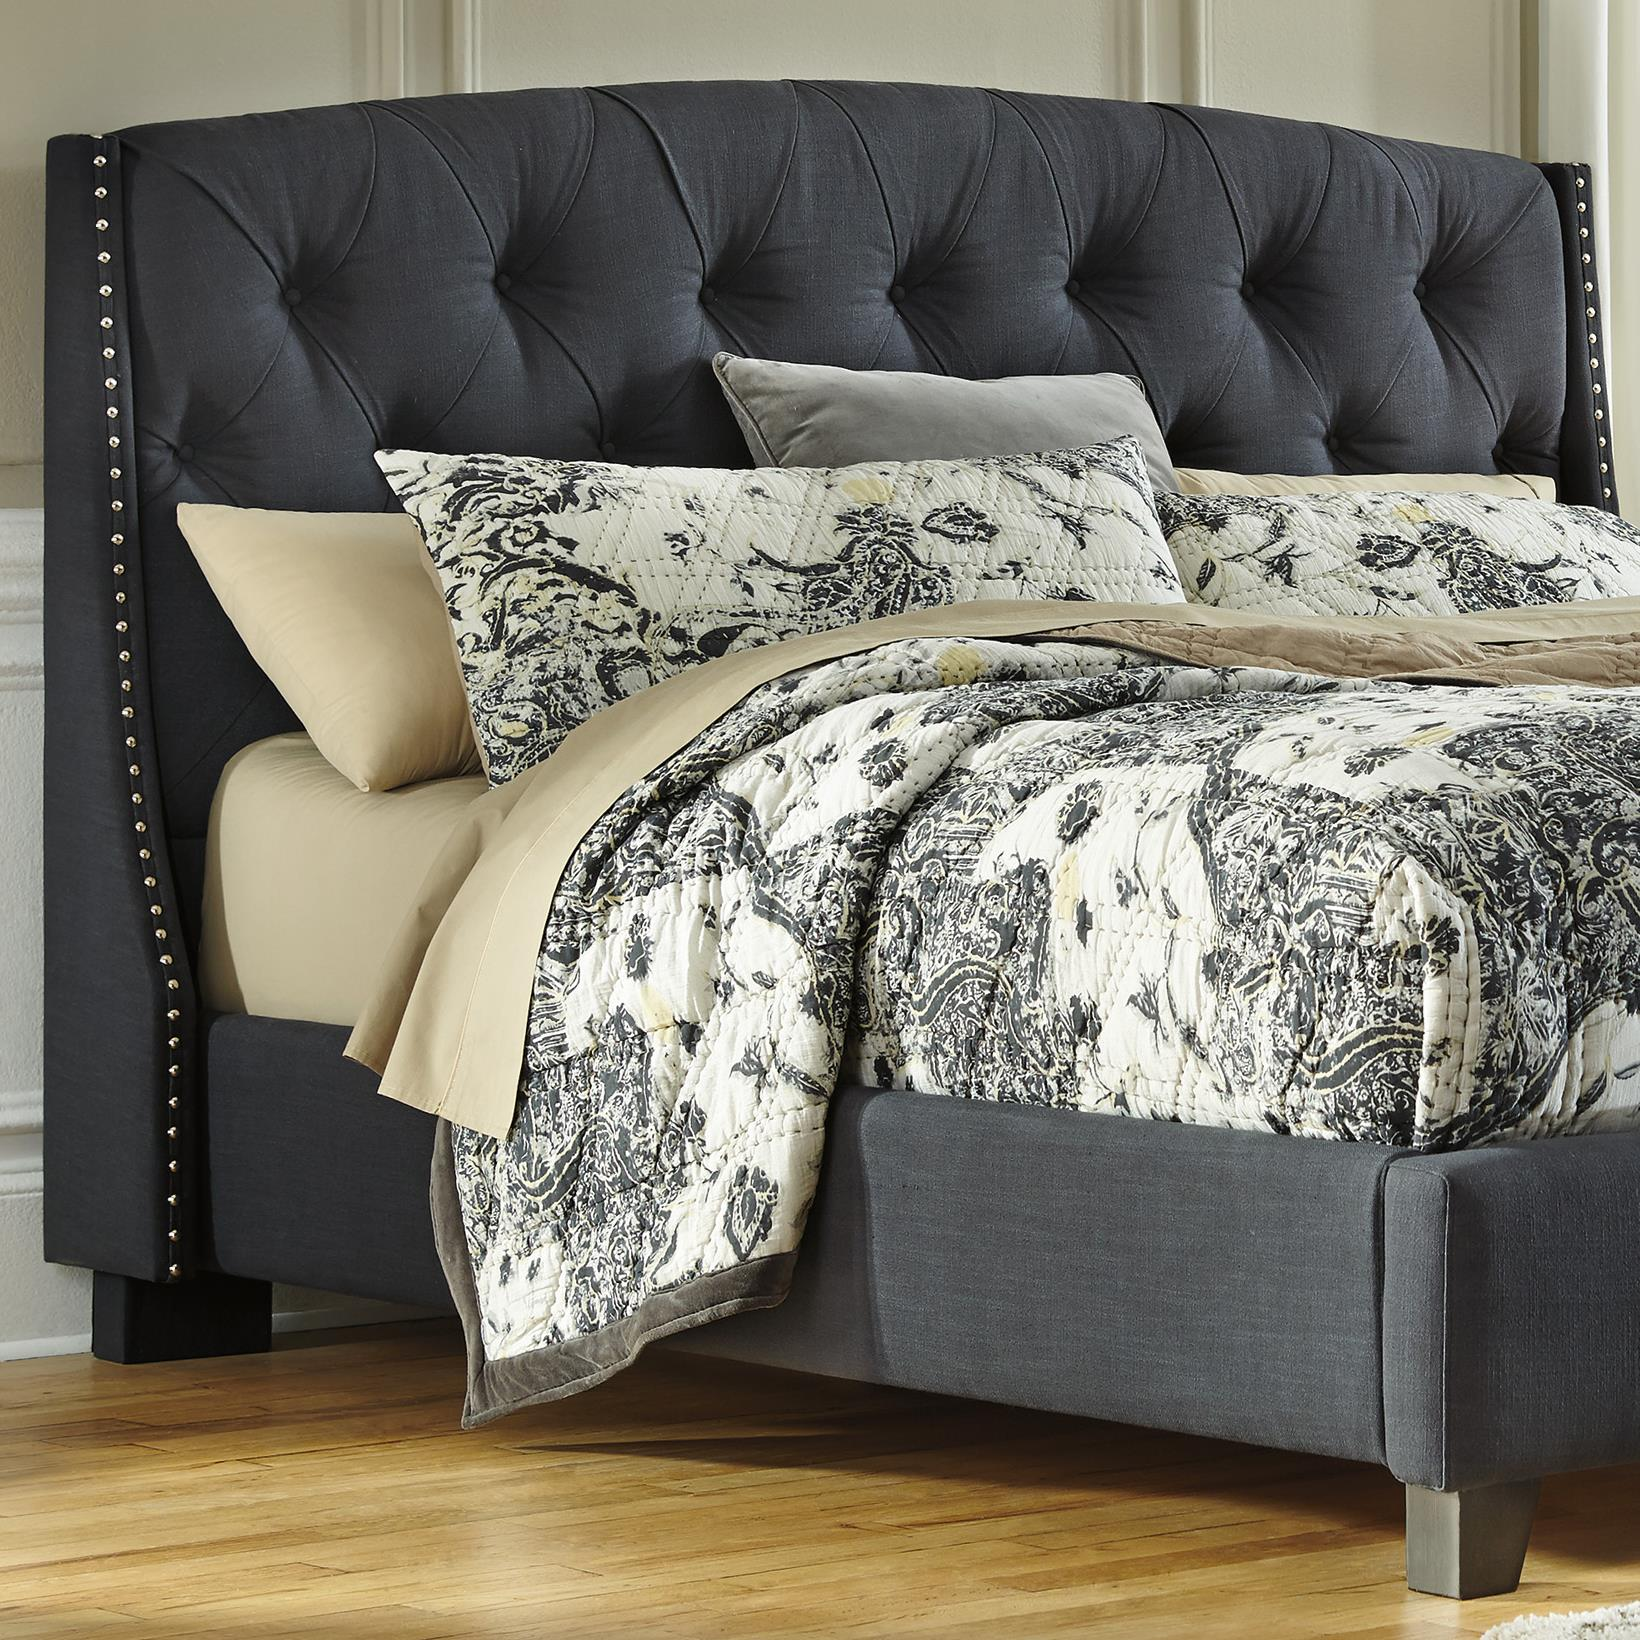 Queen Upholstered Headboard in Dark Gray with Tufting and Nailhead Trim & Queen Upholstered Headboard in Dark Gray with Tufting and Nailhead ... pillowsntoast.com